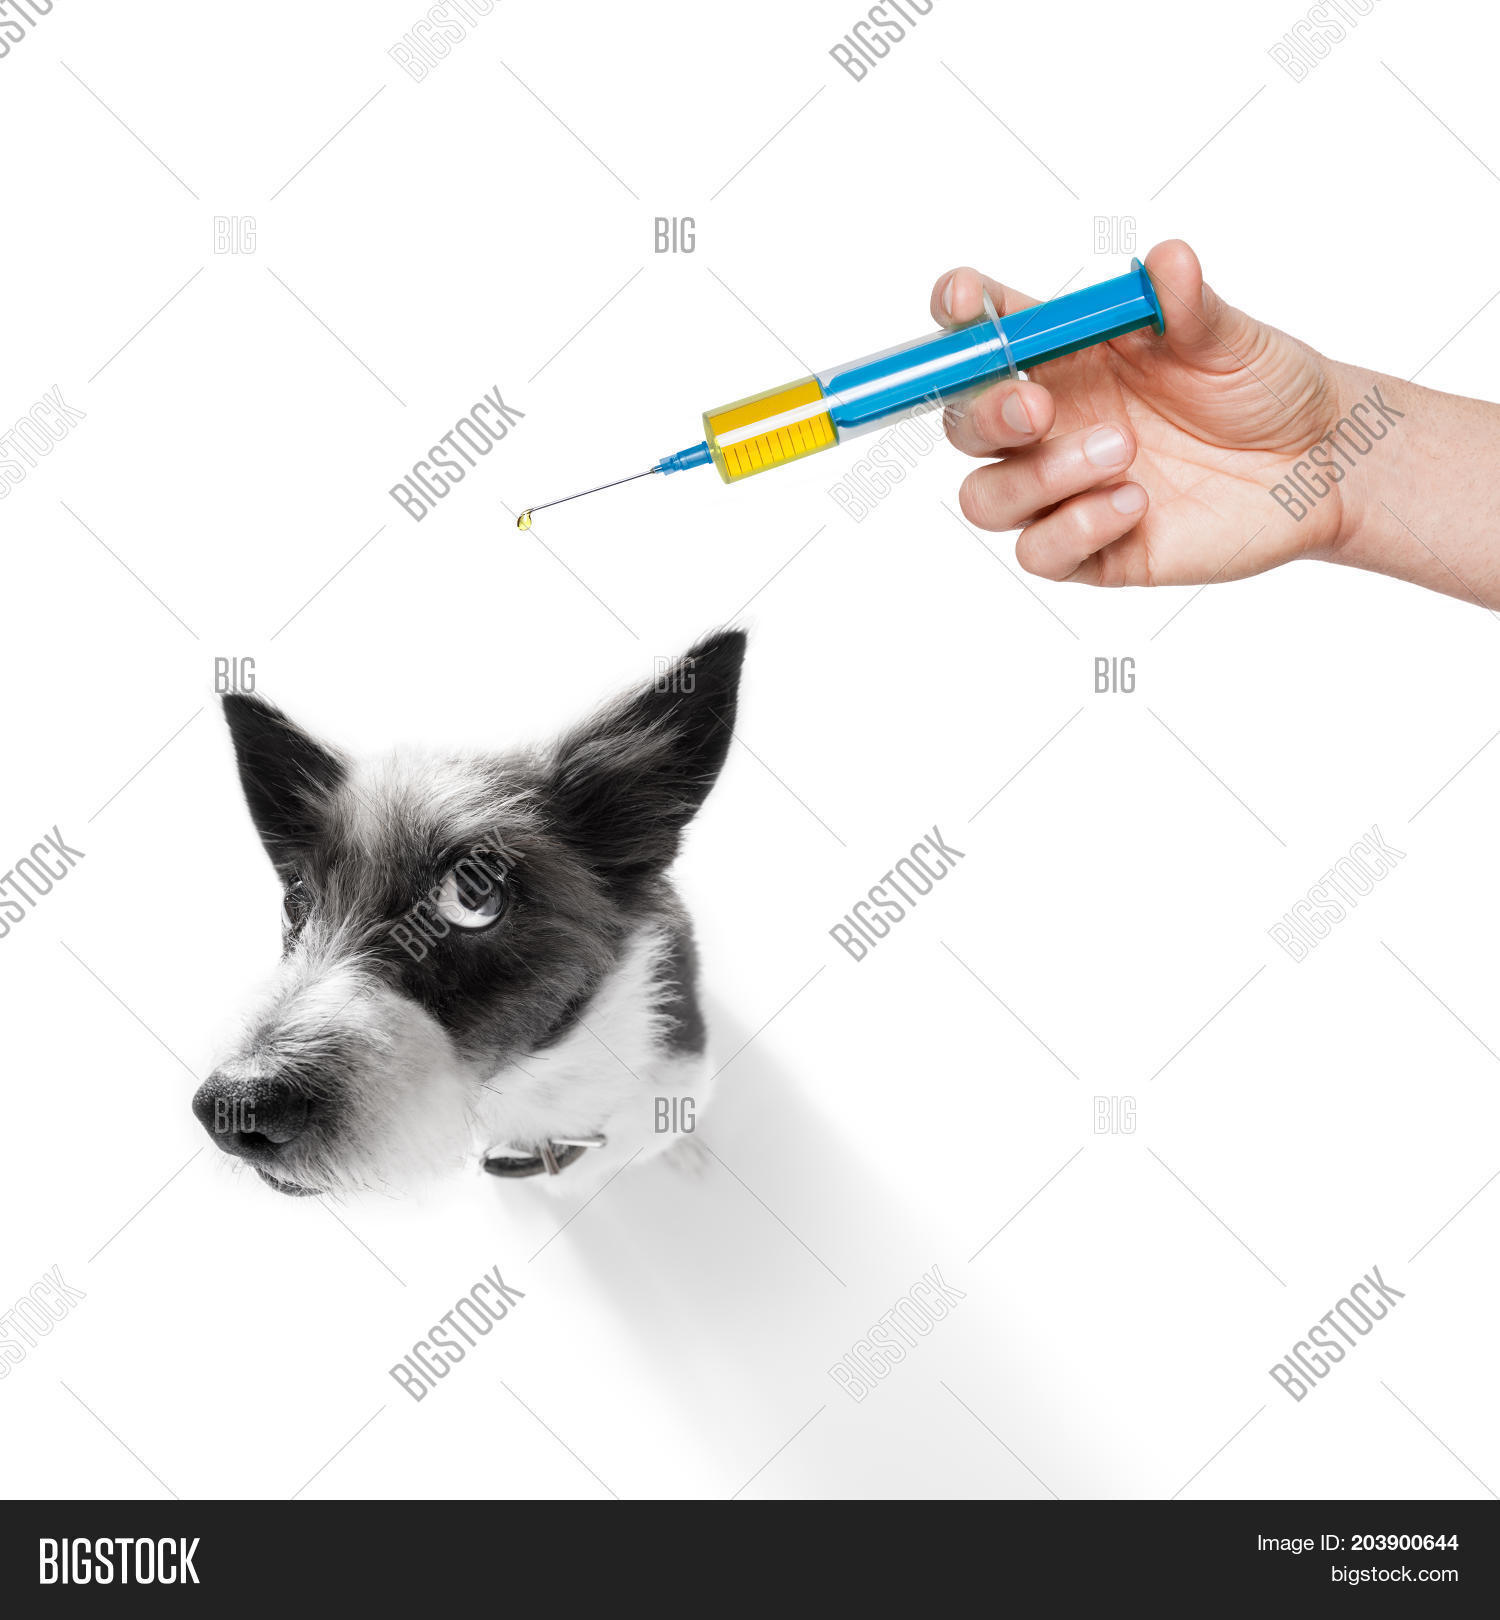 ache,aid,animal,bad,bag,care,cold,cure,disease,doctor,dog,emergency,fever,first,flu,funny,hangover,headache,heal,health,healthcare,hospital,hurt,ice,ill,illness,injury,kit,medication,medicine,pack,pain,pet,poodle,recover,shot,sick,sickness,suffer,syringe,temperature,thermometer,unhealthy,vaccination,vaccine,vet,veterinarian,vitamins